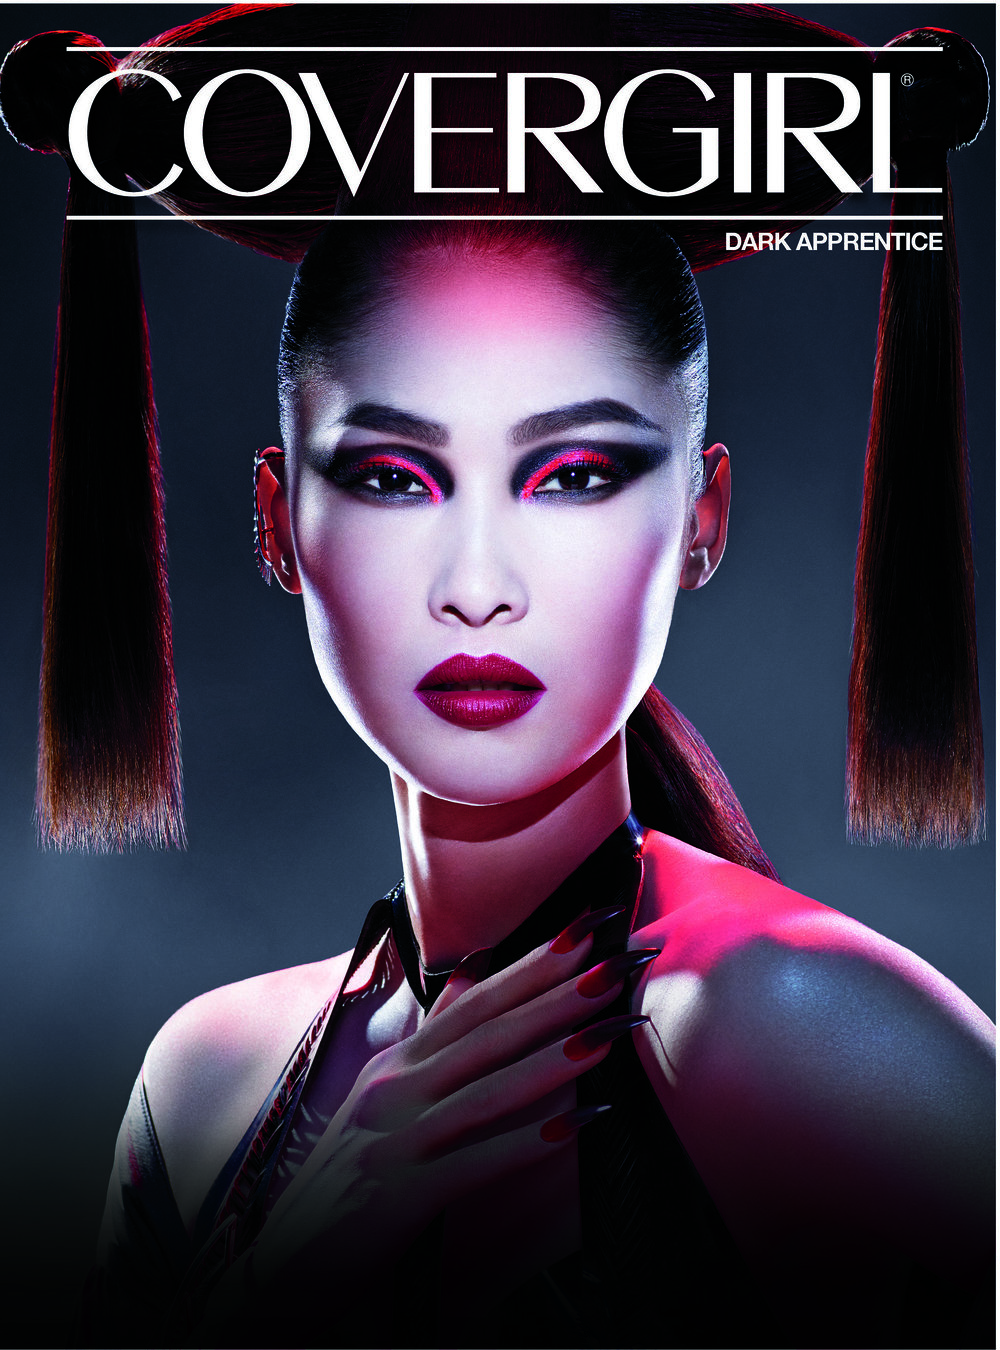 CoverGirl-Dark-Apprentice-Look.jpg